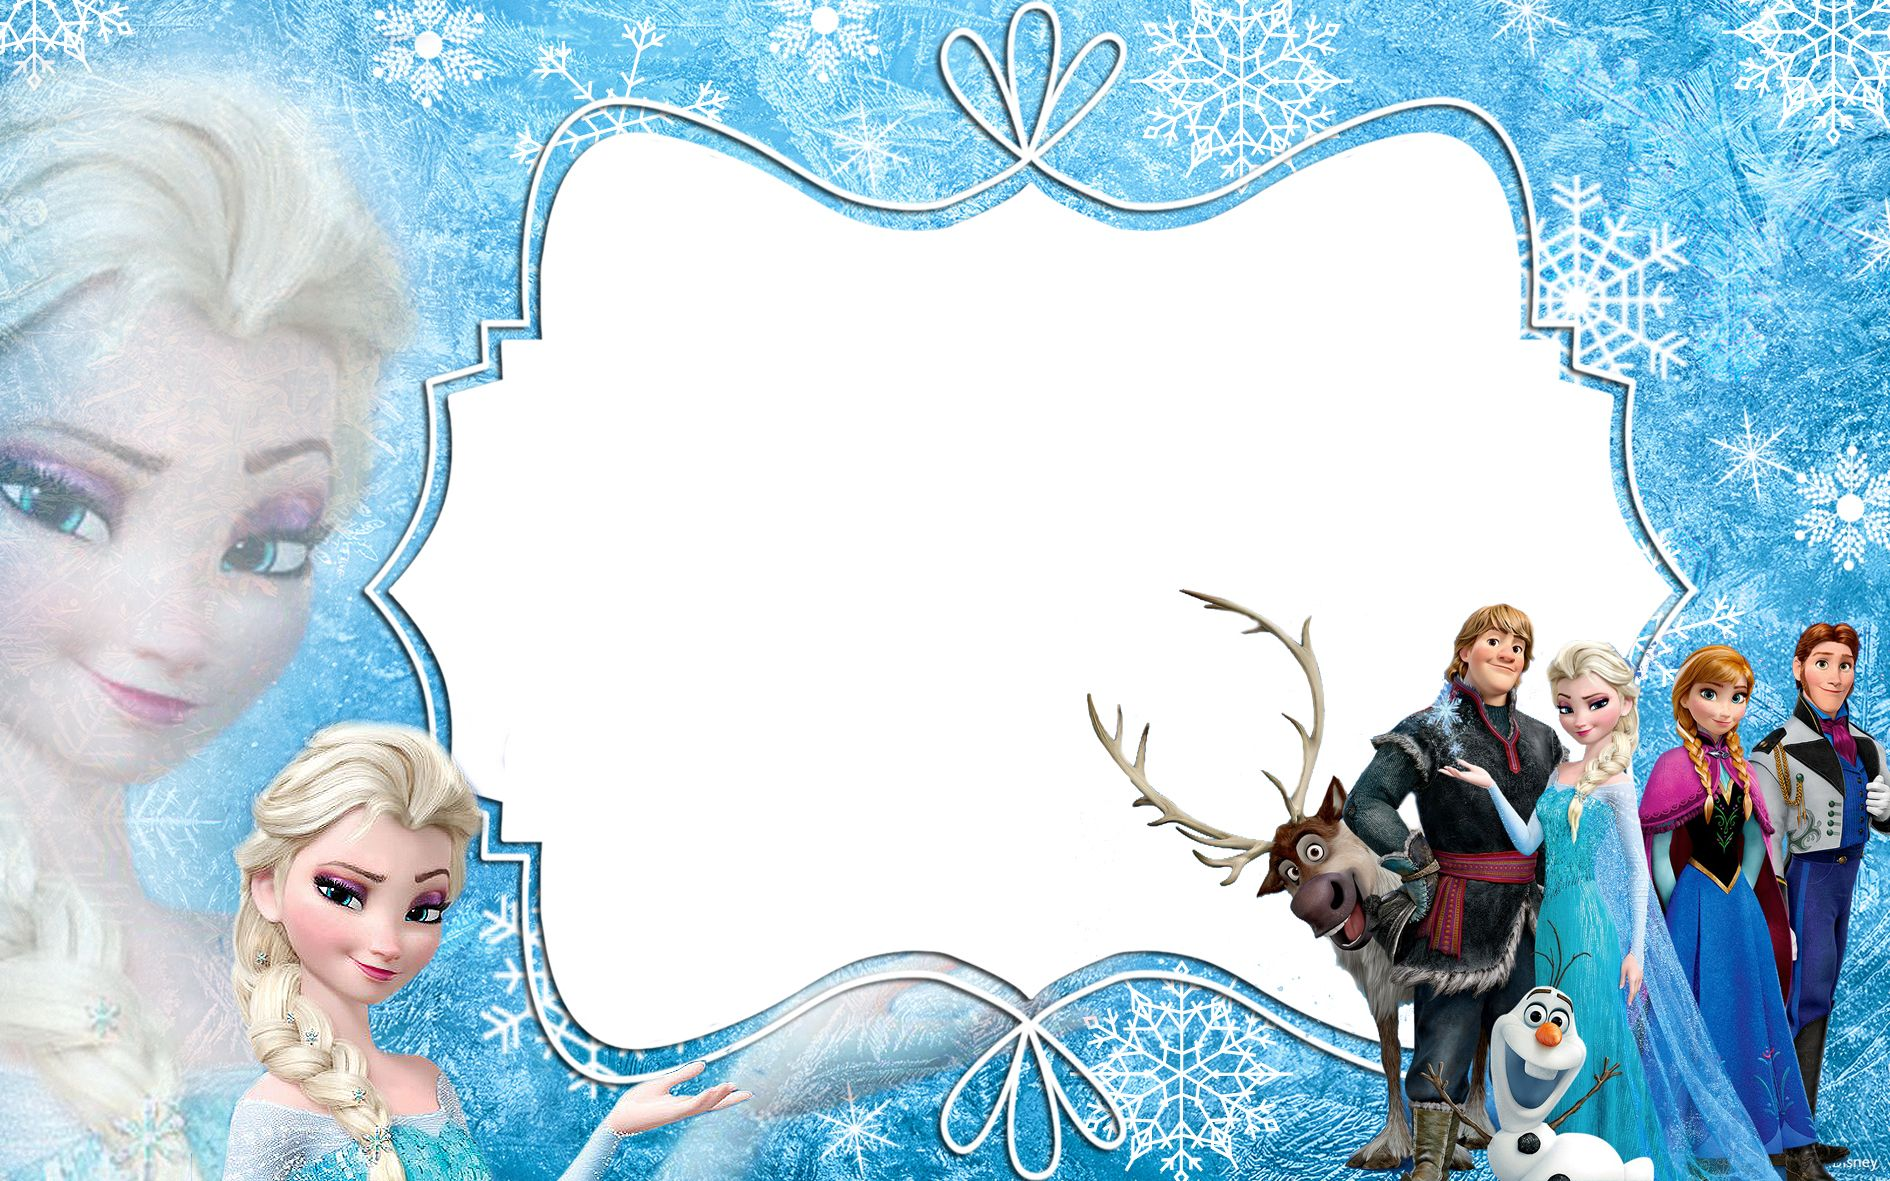 Frozen Photos Download Wallpapers Free Clips Birthday Party